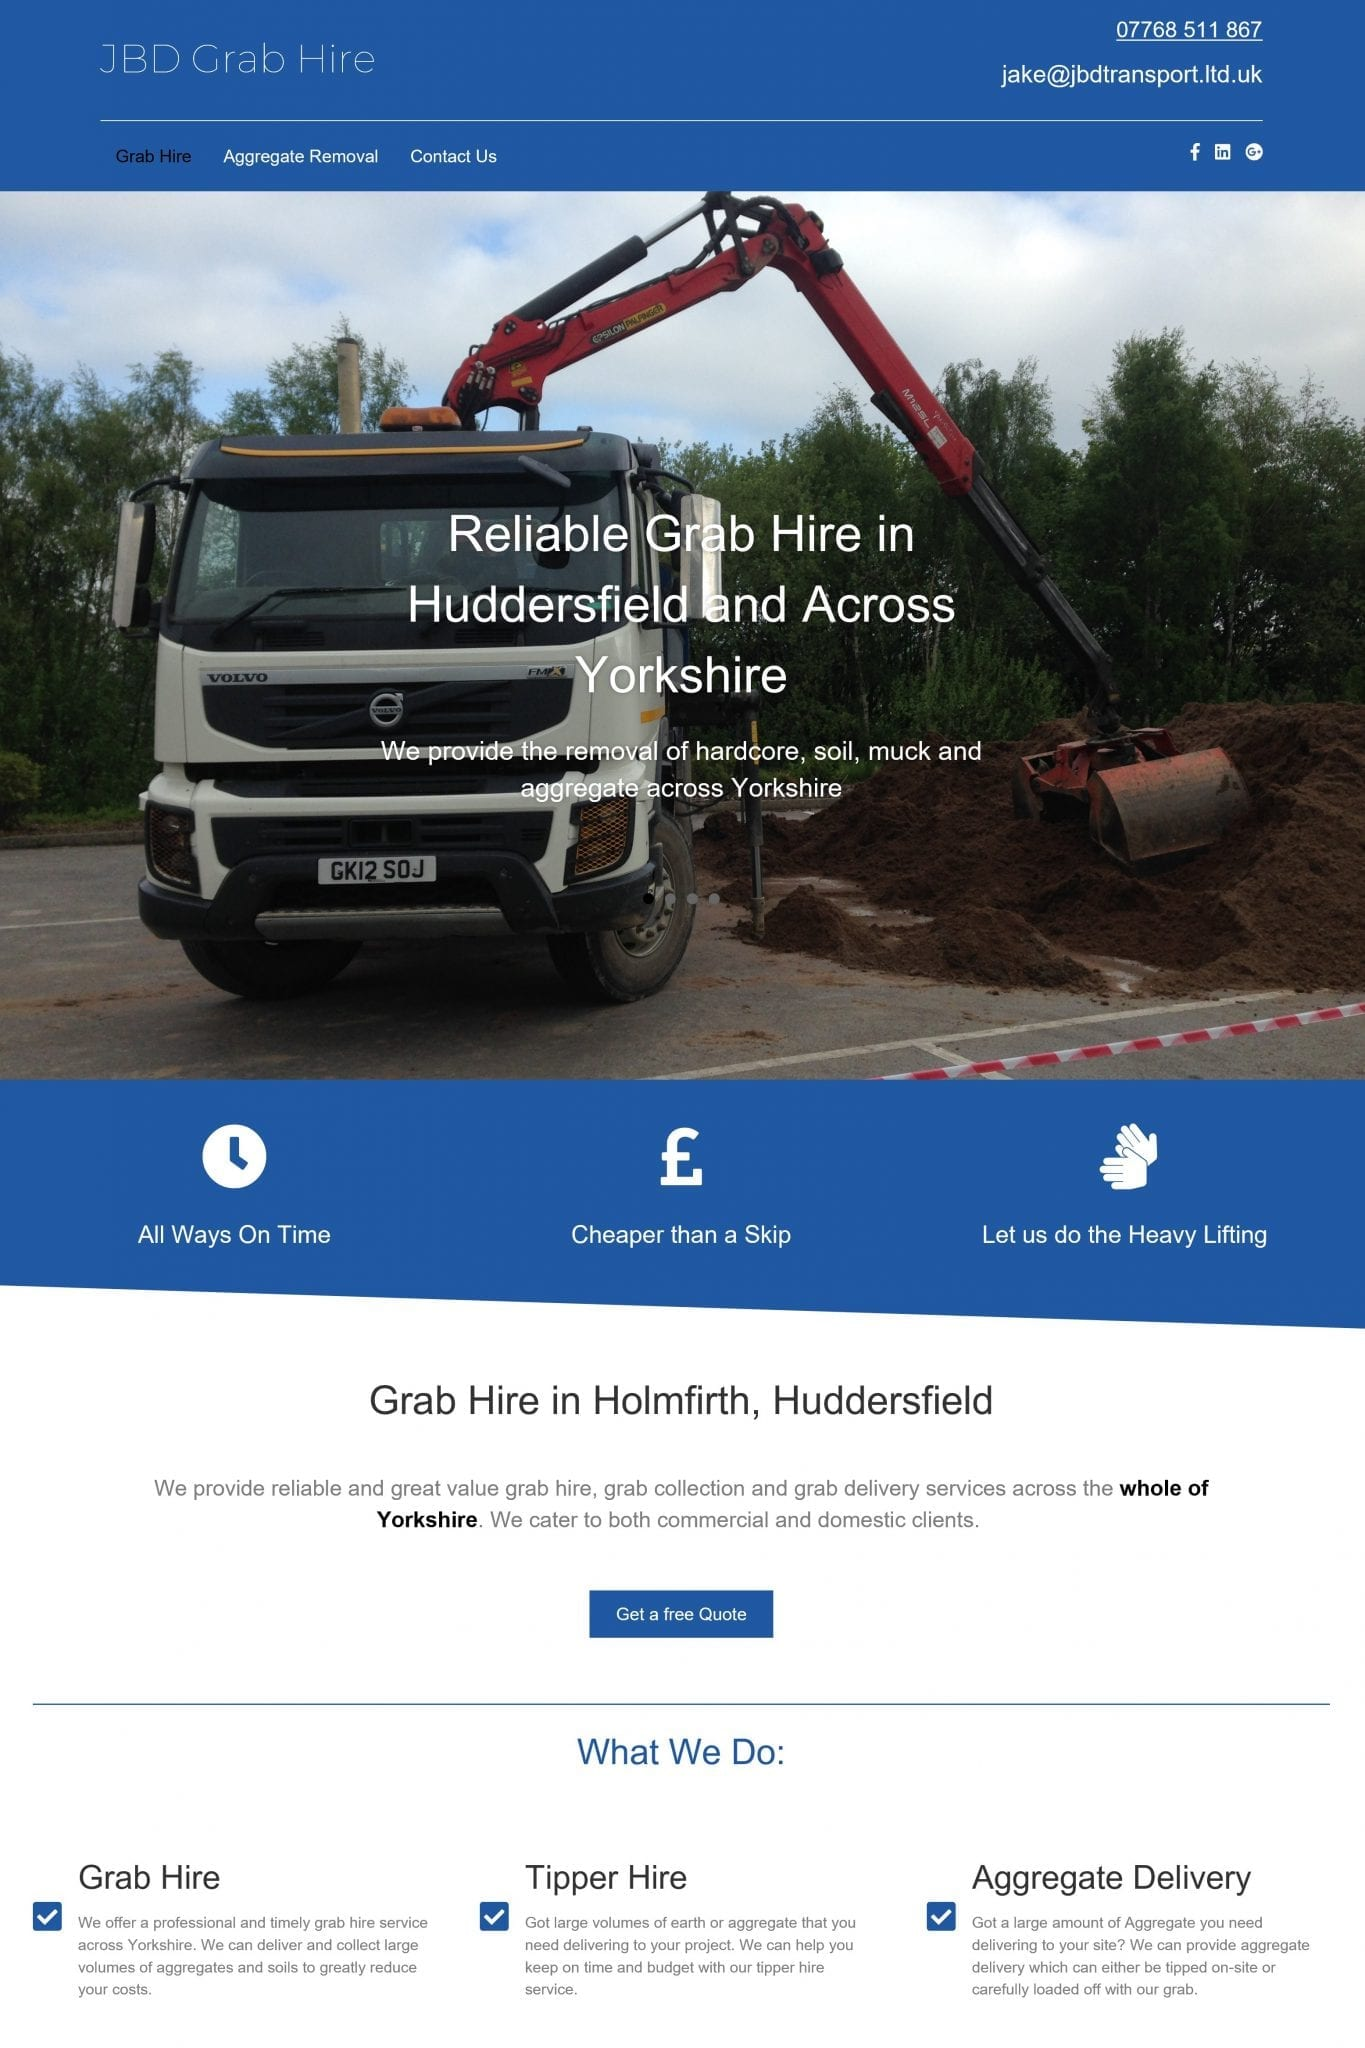 JBD Transport in holmfirth website screen shot 4x6